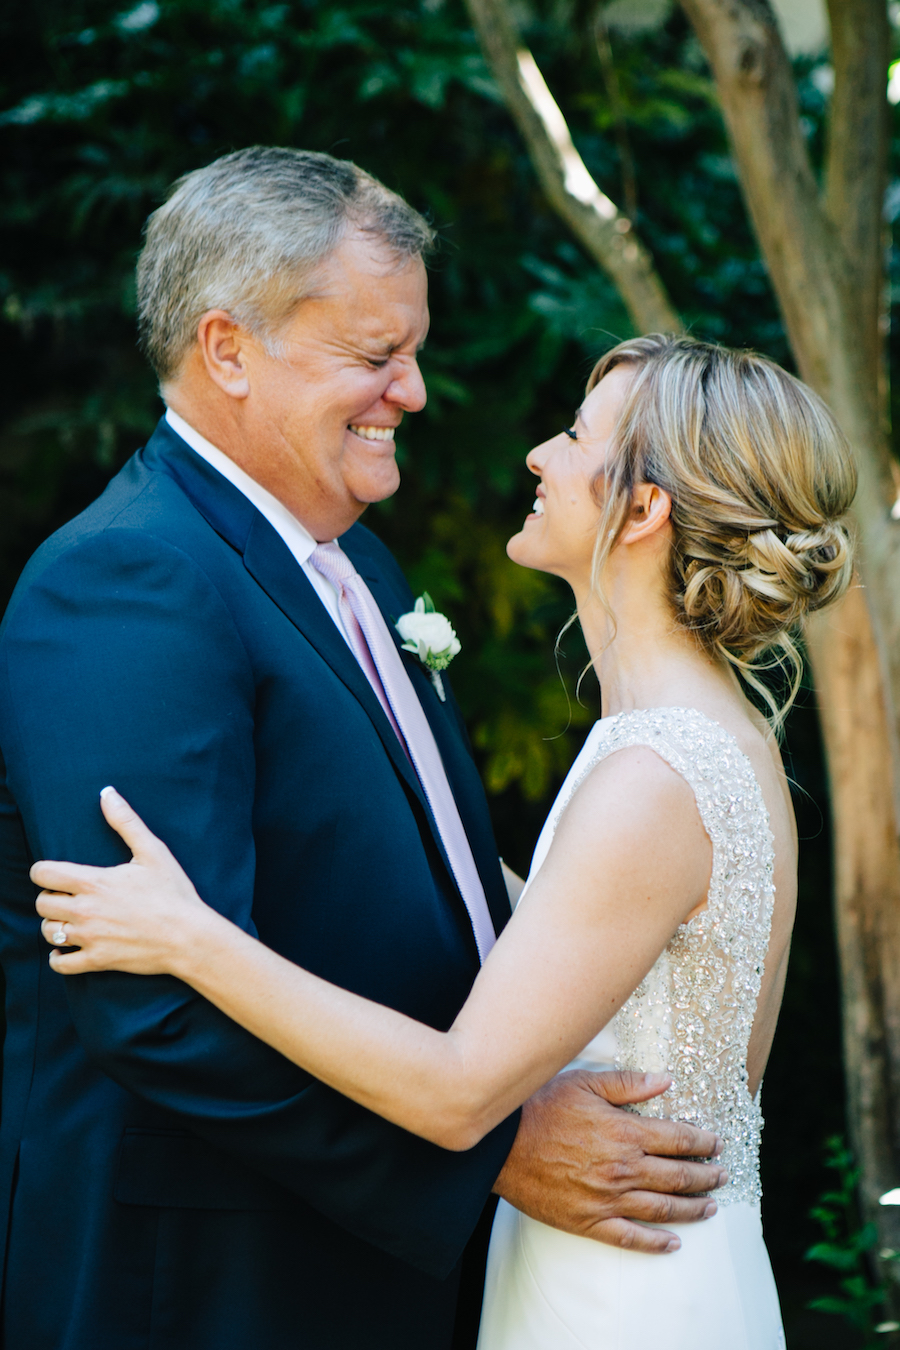 ROQUE Events - Amber and Vince - Courtney Lindberg Photography - Napa Valley Wedding18.JPG